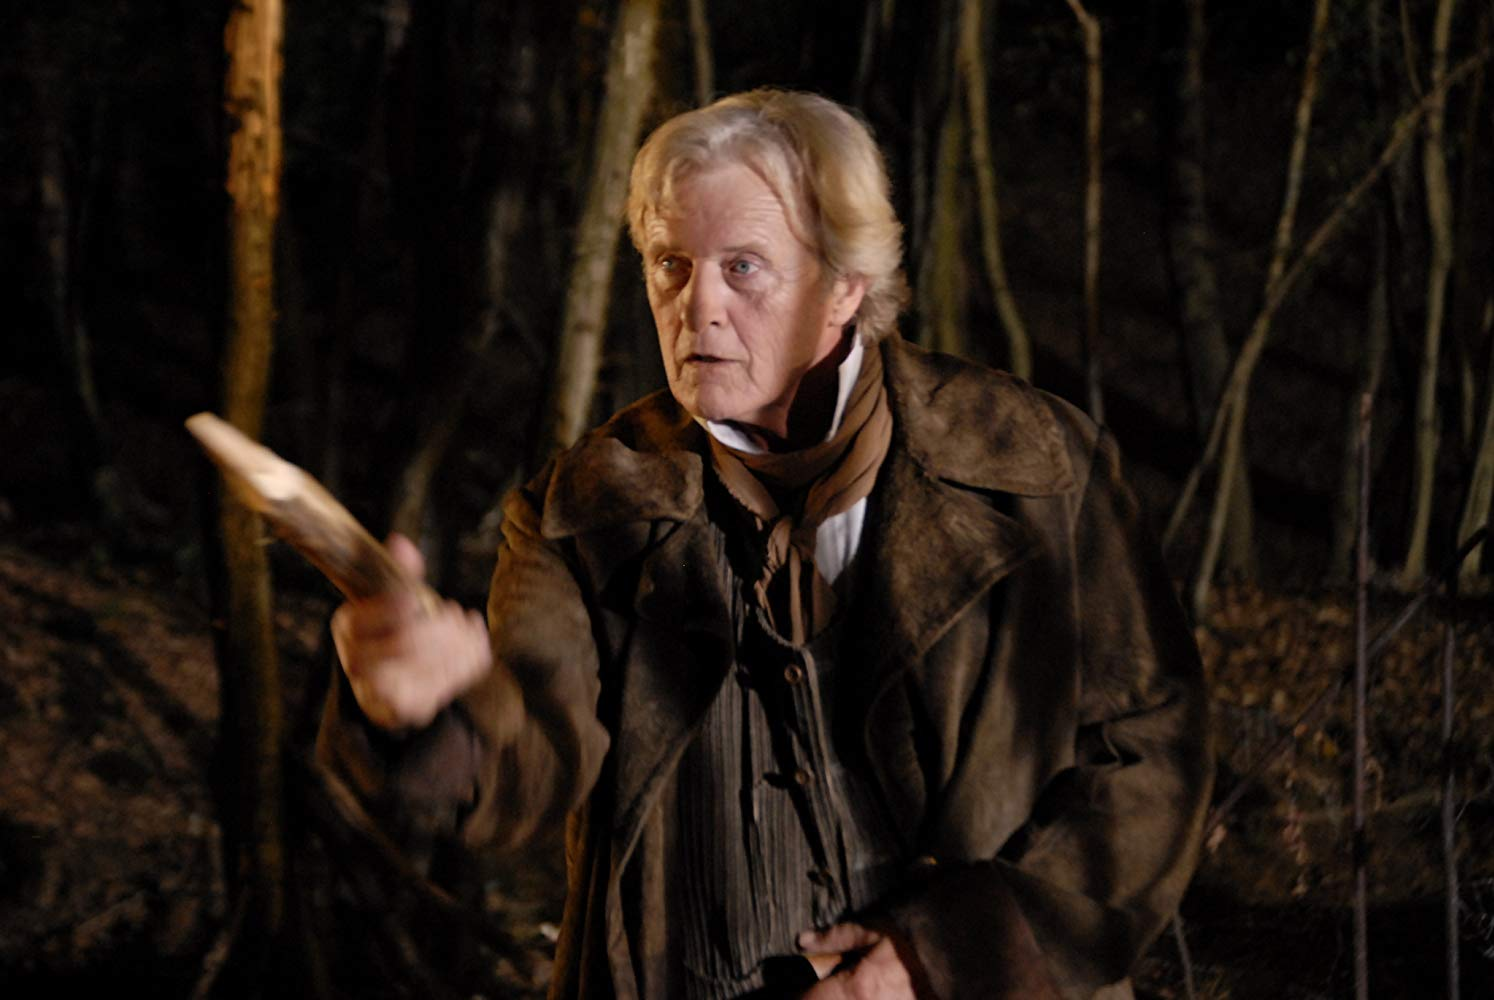 Rutger Hauer as Van Helsing in Dracula (2012)